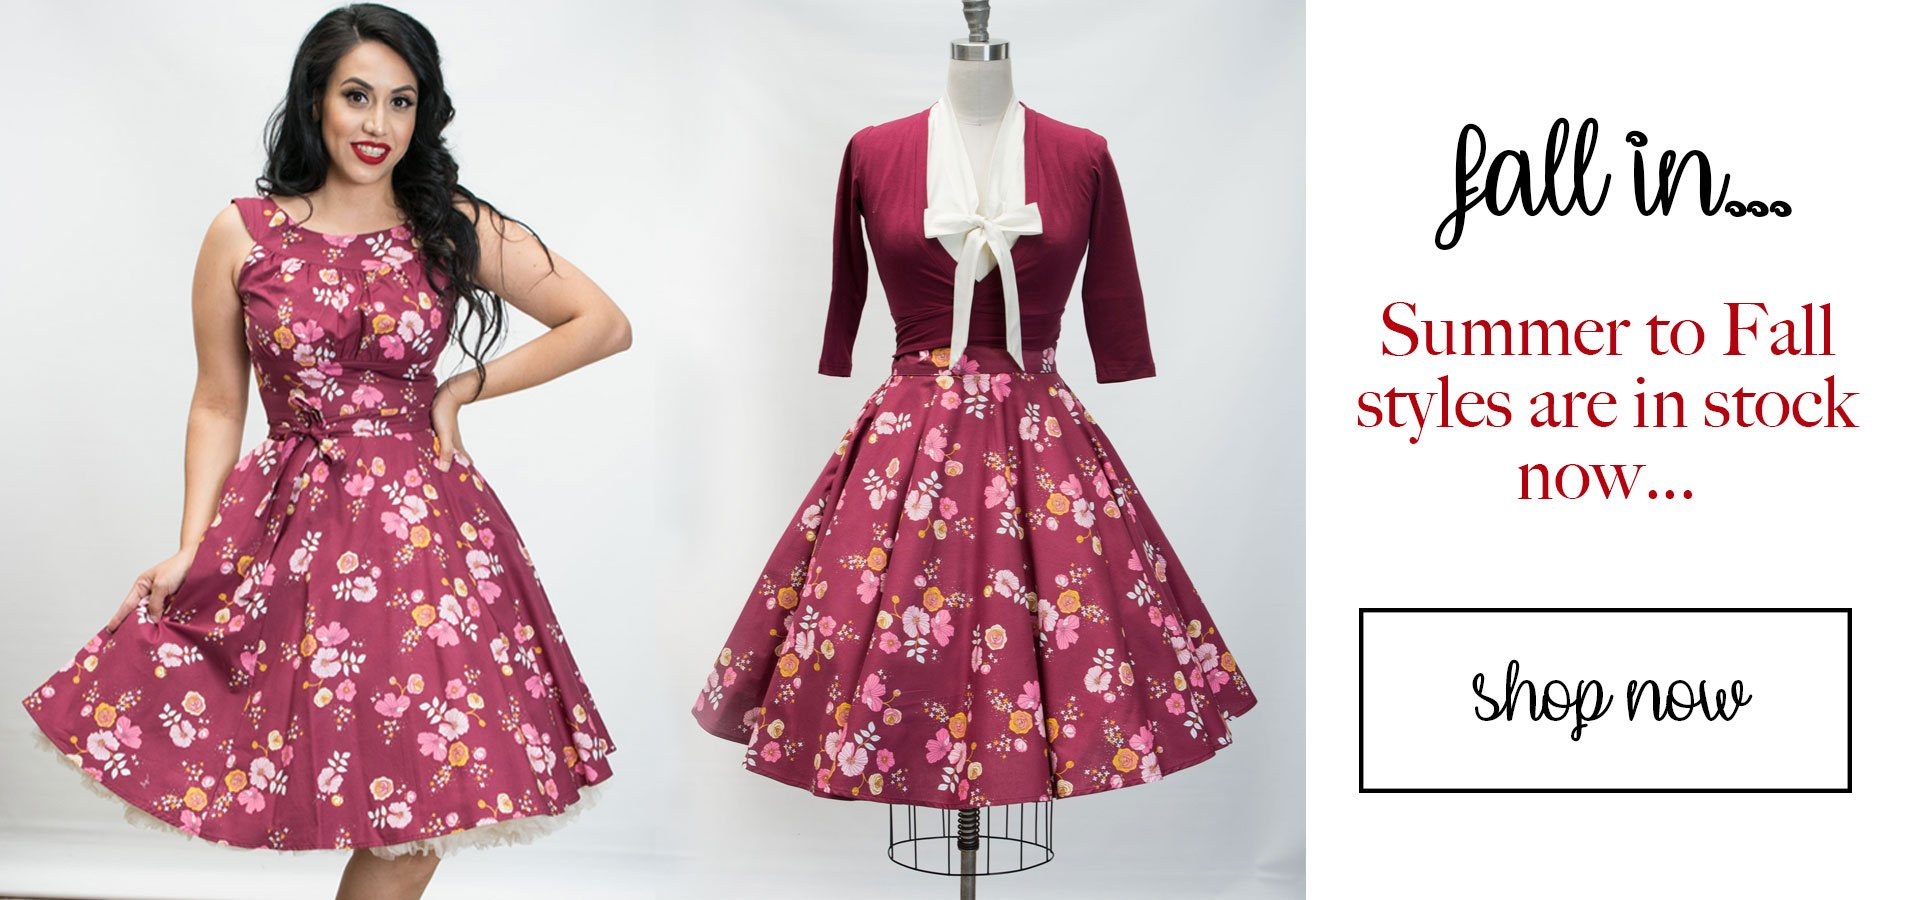 Heart of Haute | Limited Print Butterfly Party catch yours before they fly away! Sarah Swing Dress